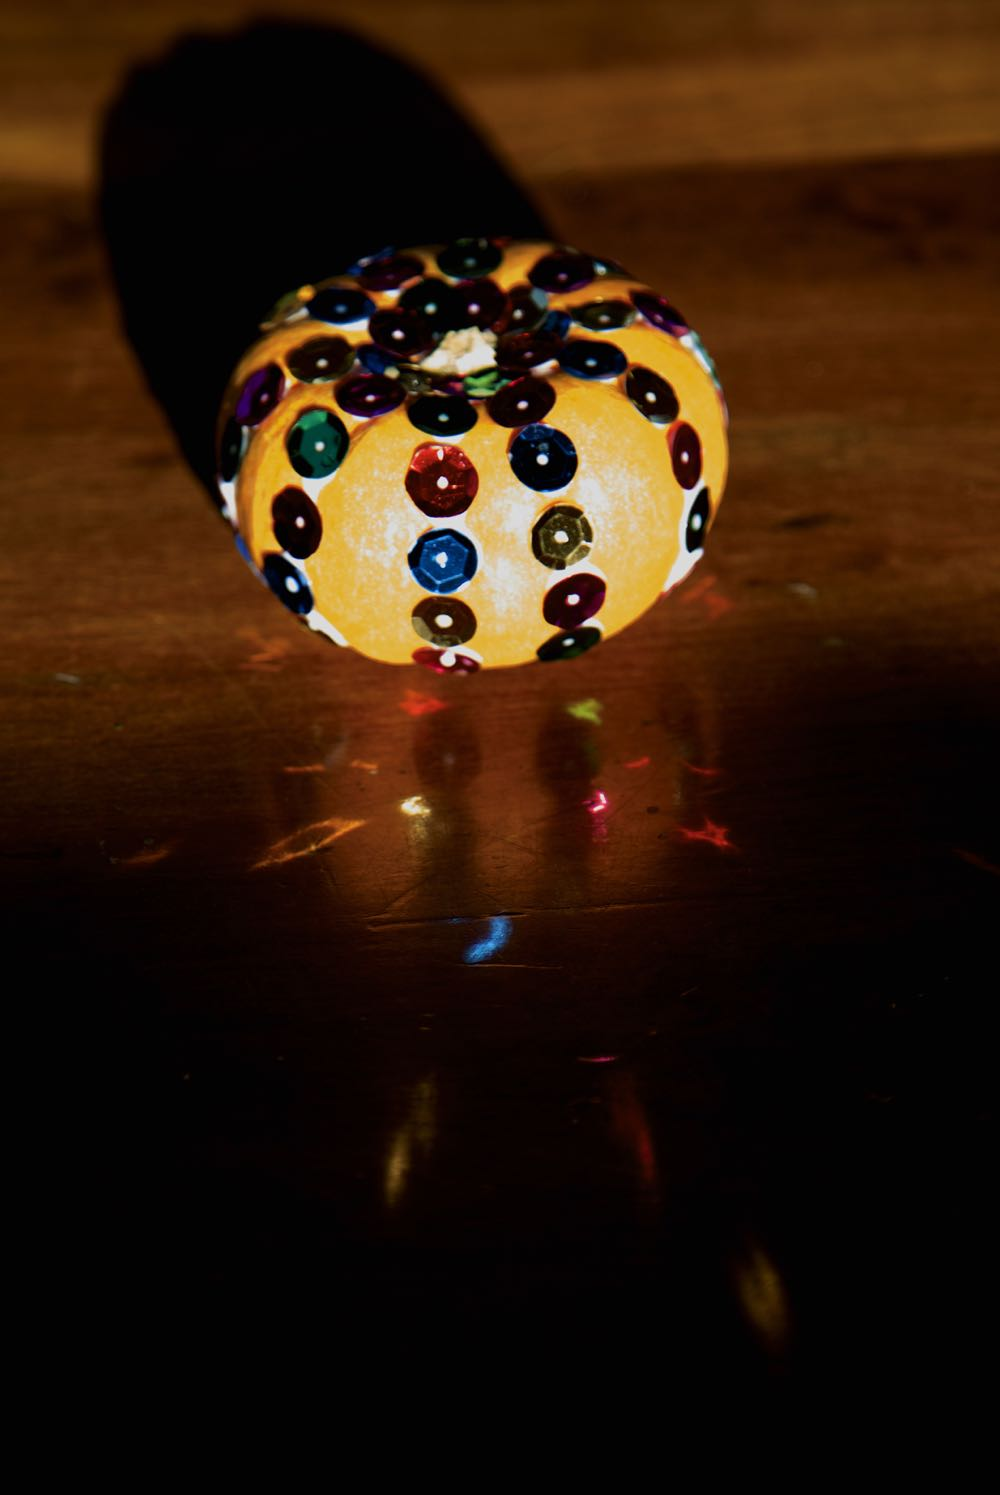 Light reflecting off the sequins onto the table.